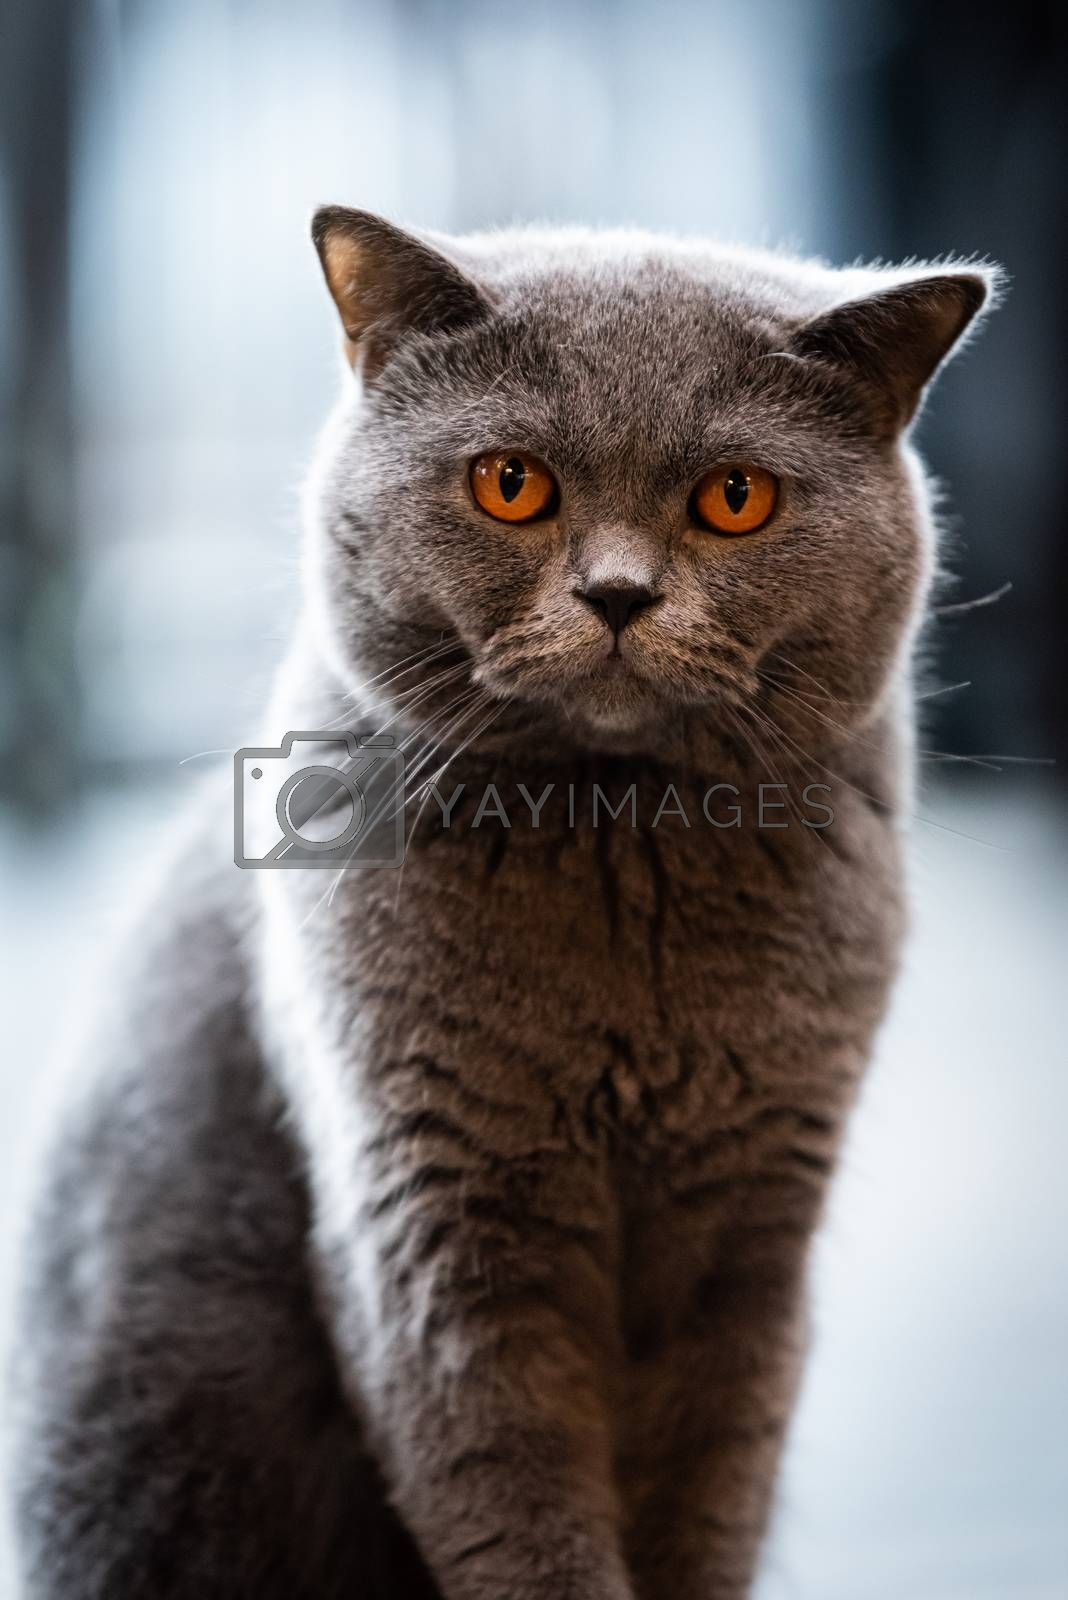 A black cat with yellow eyes in the morning. by animagesdesign